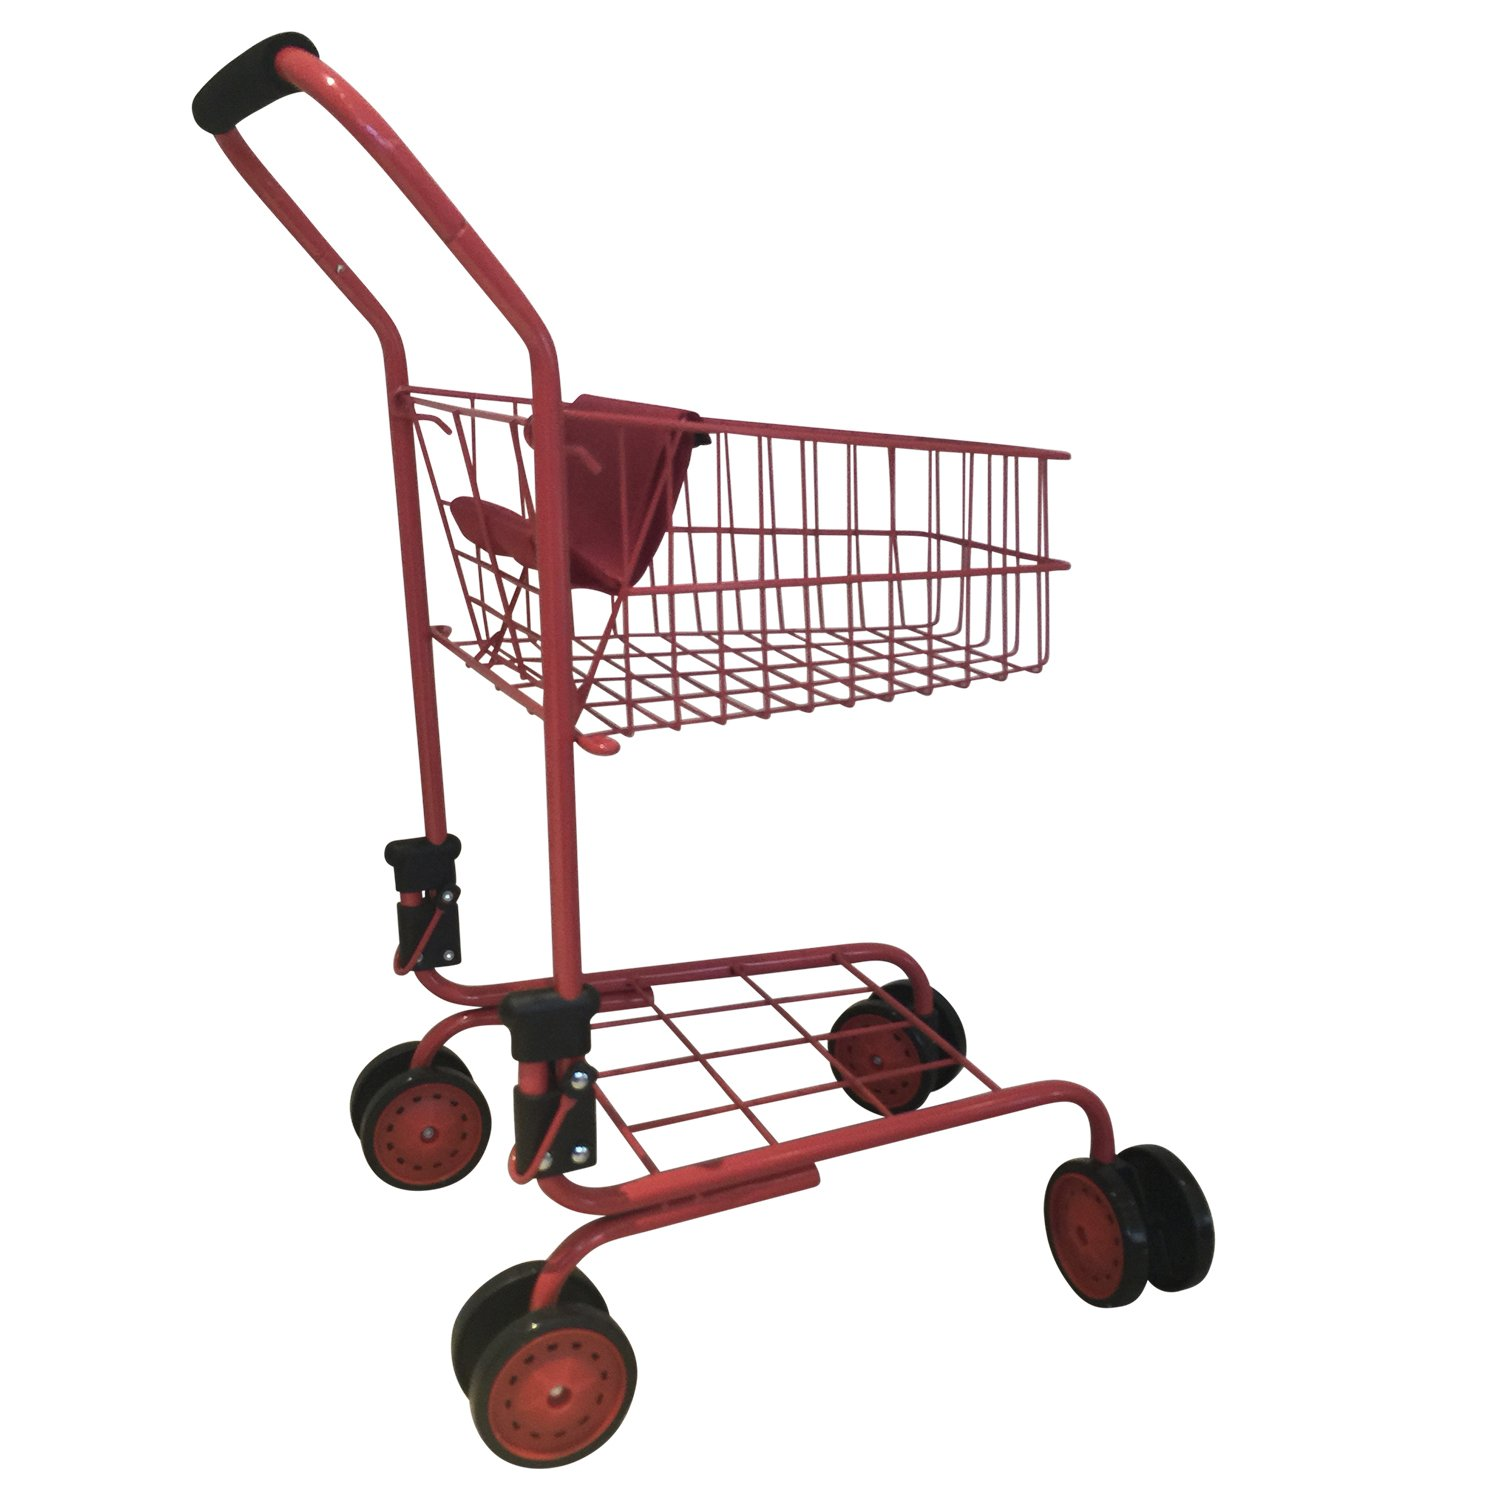 Toy Shopping Cart for Kids and Toddler - Includes Food - Folds for Easy Storage Metal Frame by The New York Doll Collection